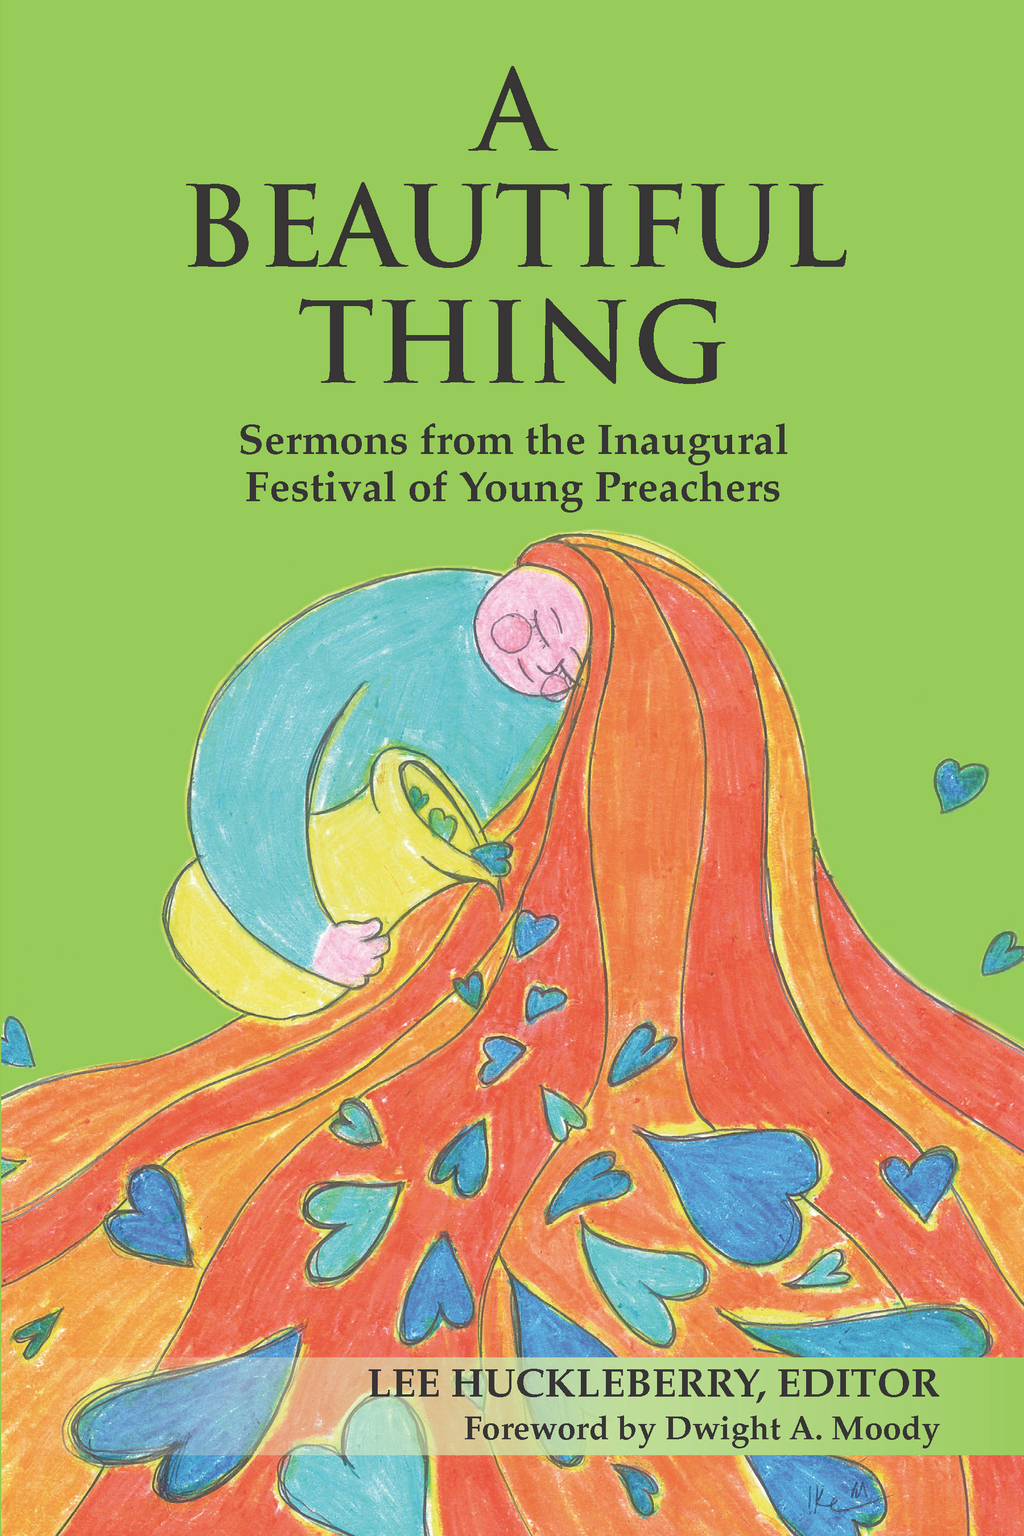 A Beautiful Thing: Sermons from the Inaugural Festival of Young Preachers By: Lee Huckleberry